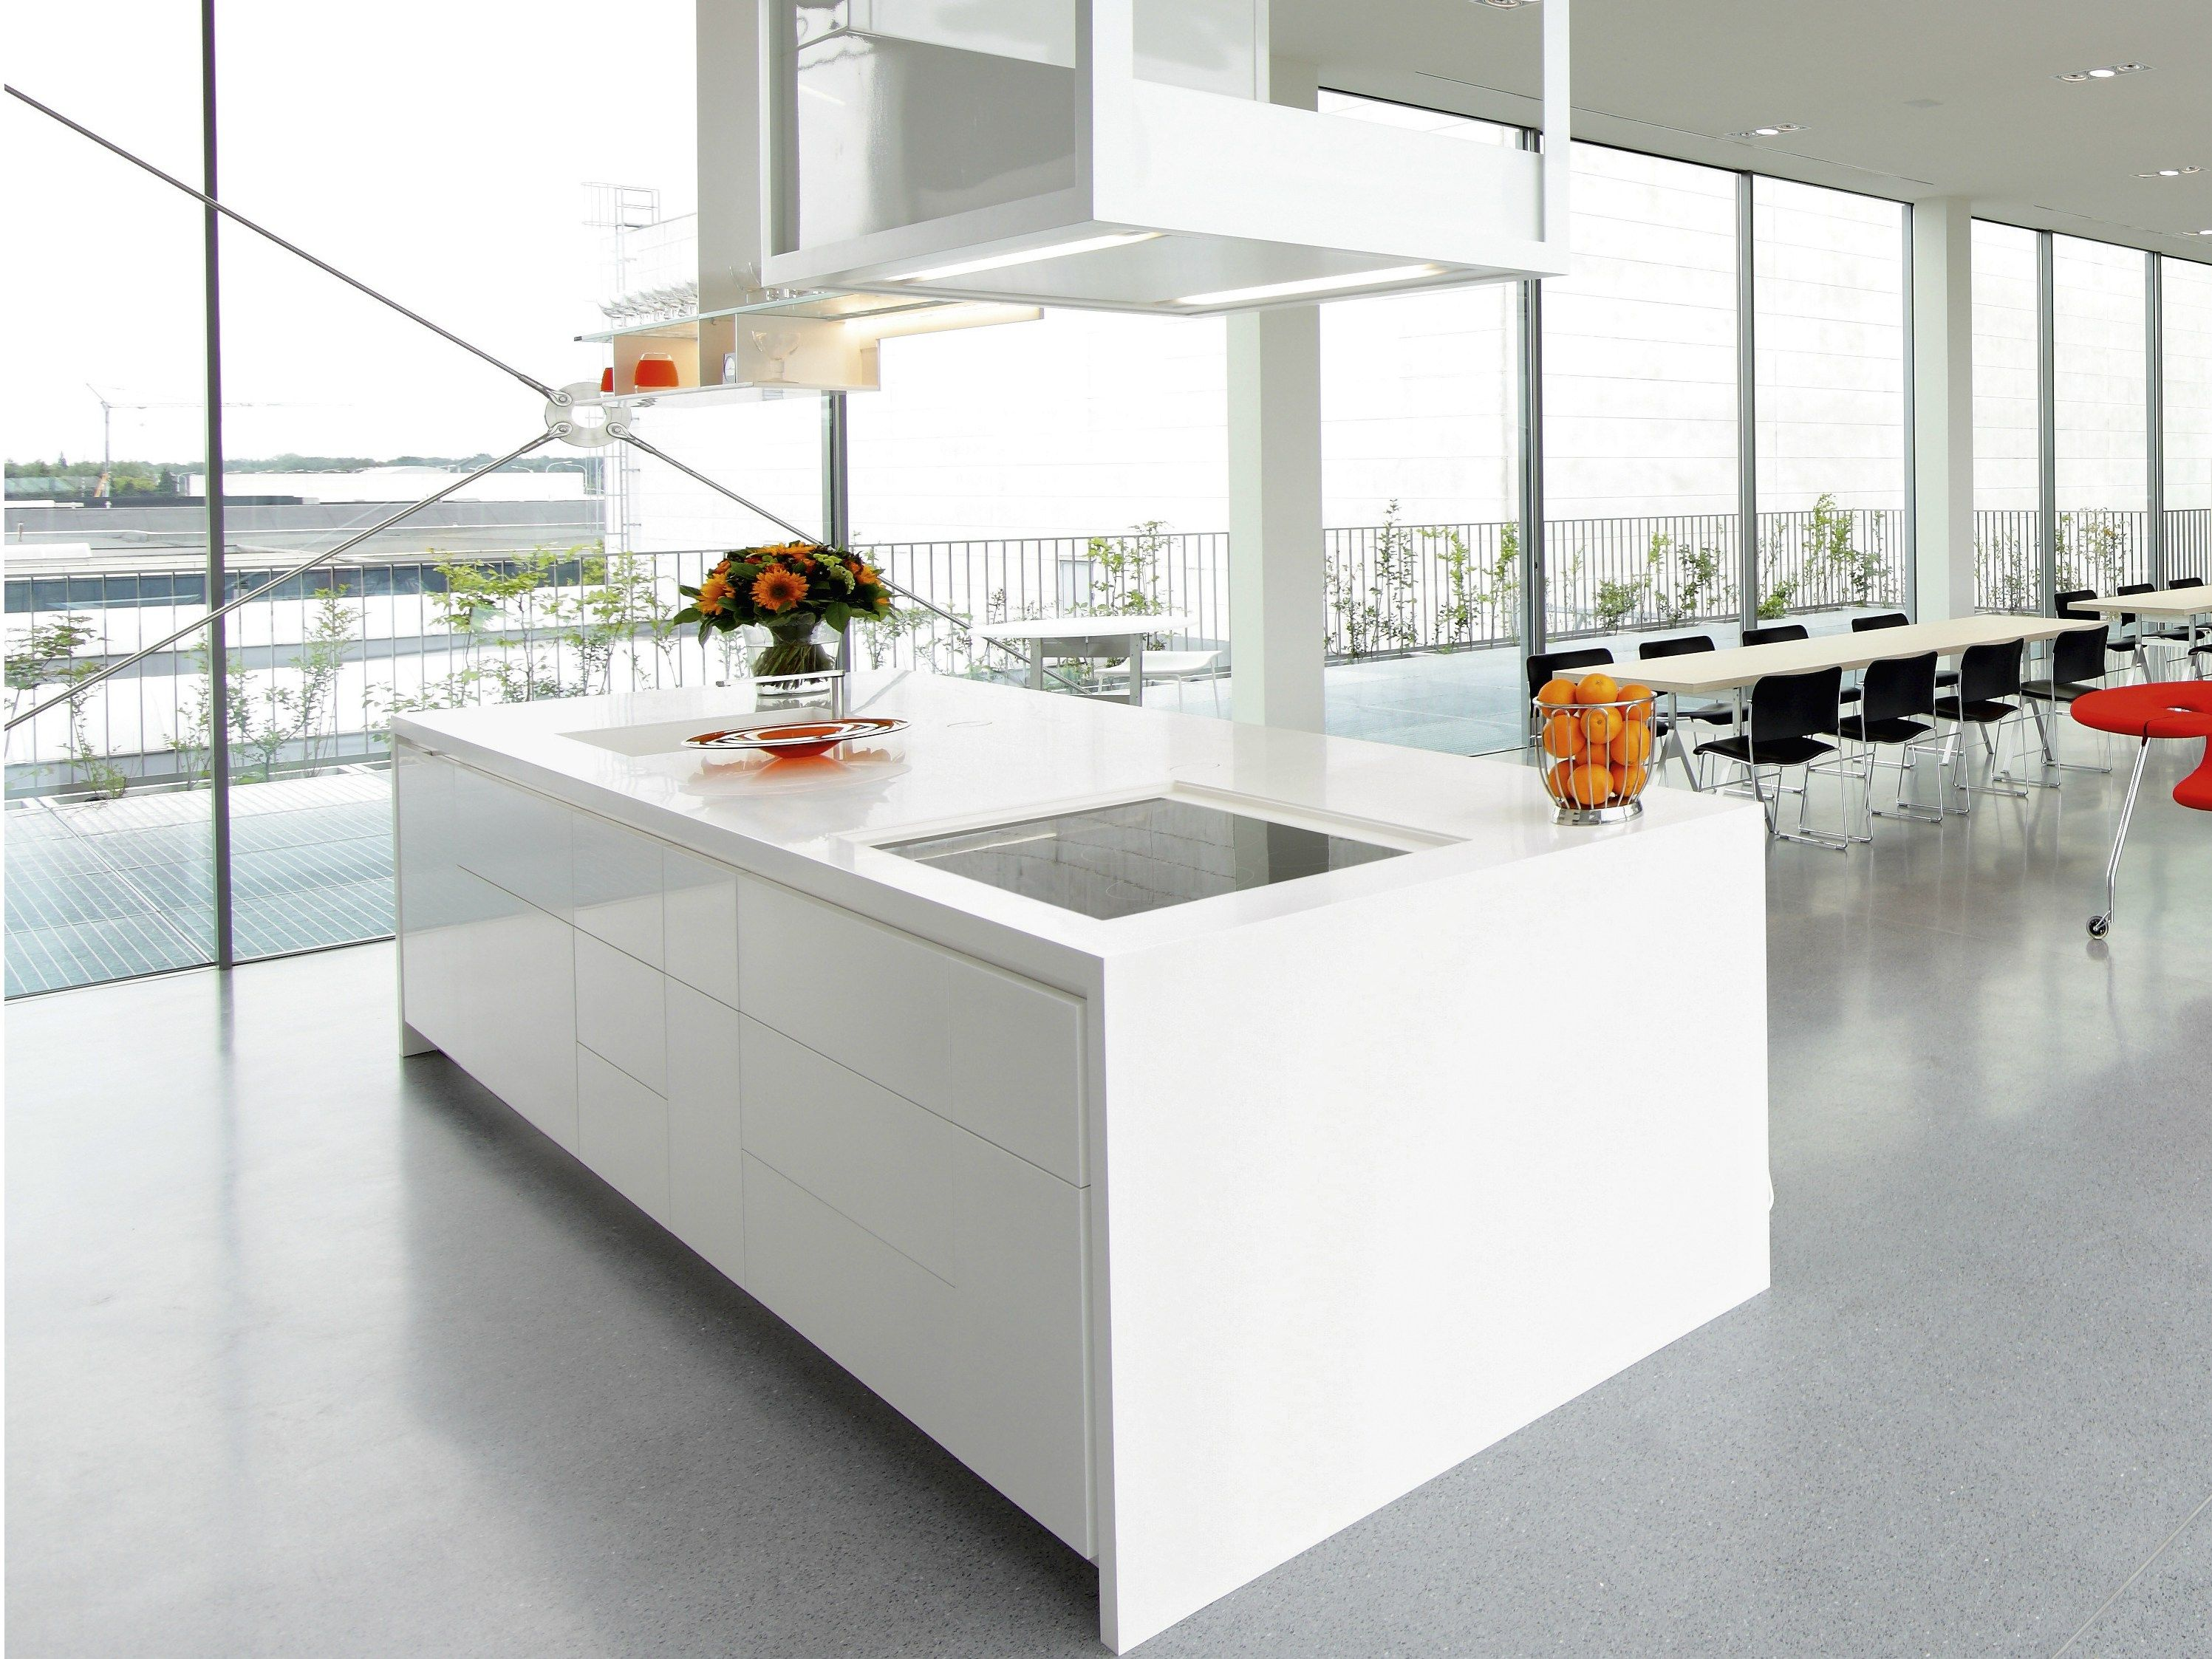 Getacore Kitchen By Getacore By Westag